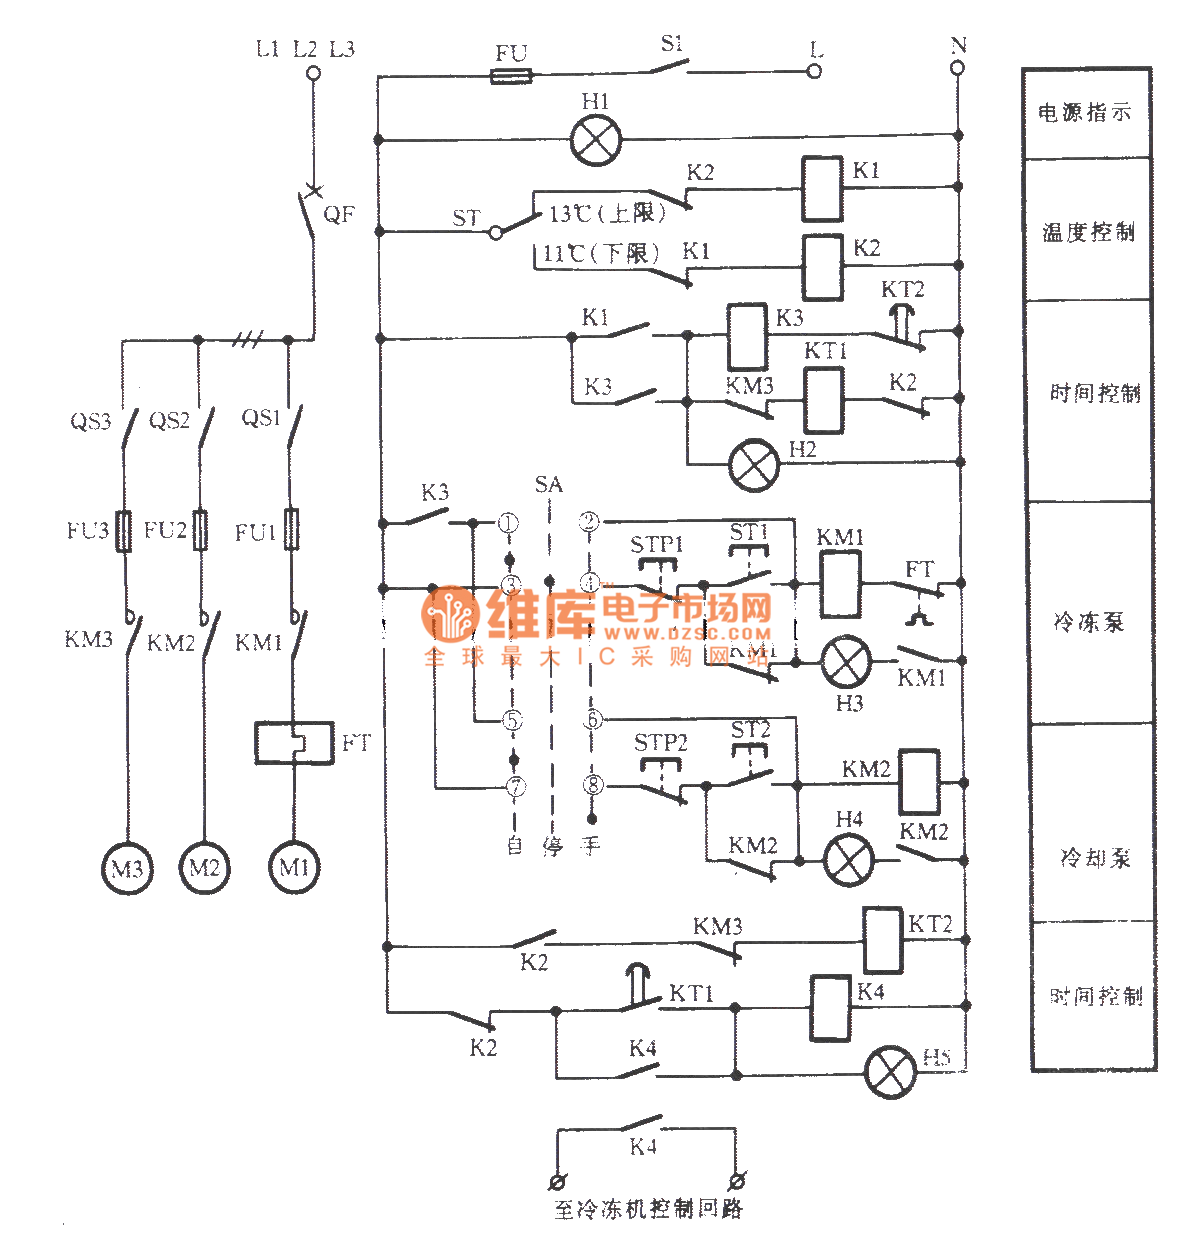 Masterslave Switch in addition Et 68103 Spk Xm Gtx6040 Fb R also Product data sheet0900aecd805bbef6 together with Read together with Cpu Wiring Diagram. on computer power supply wiring diagram